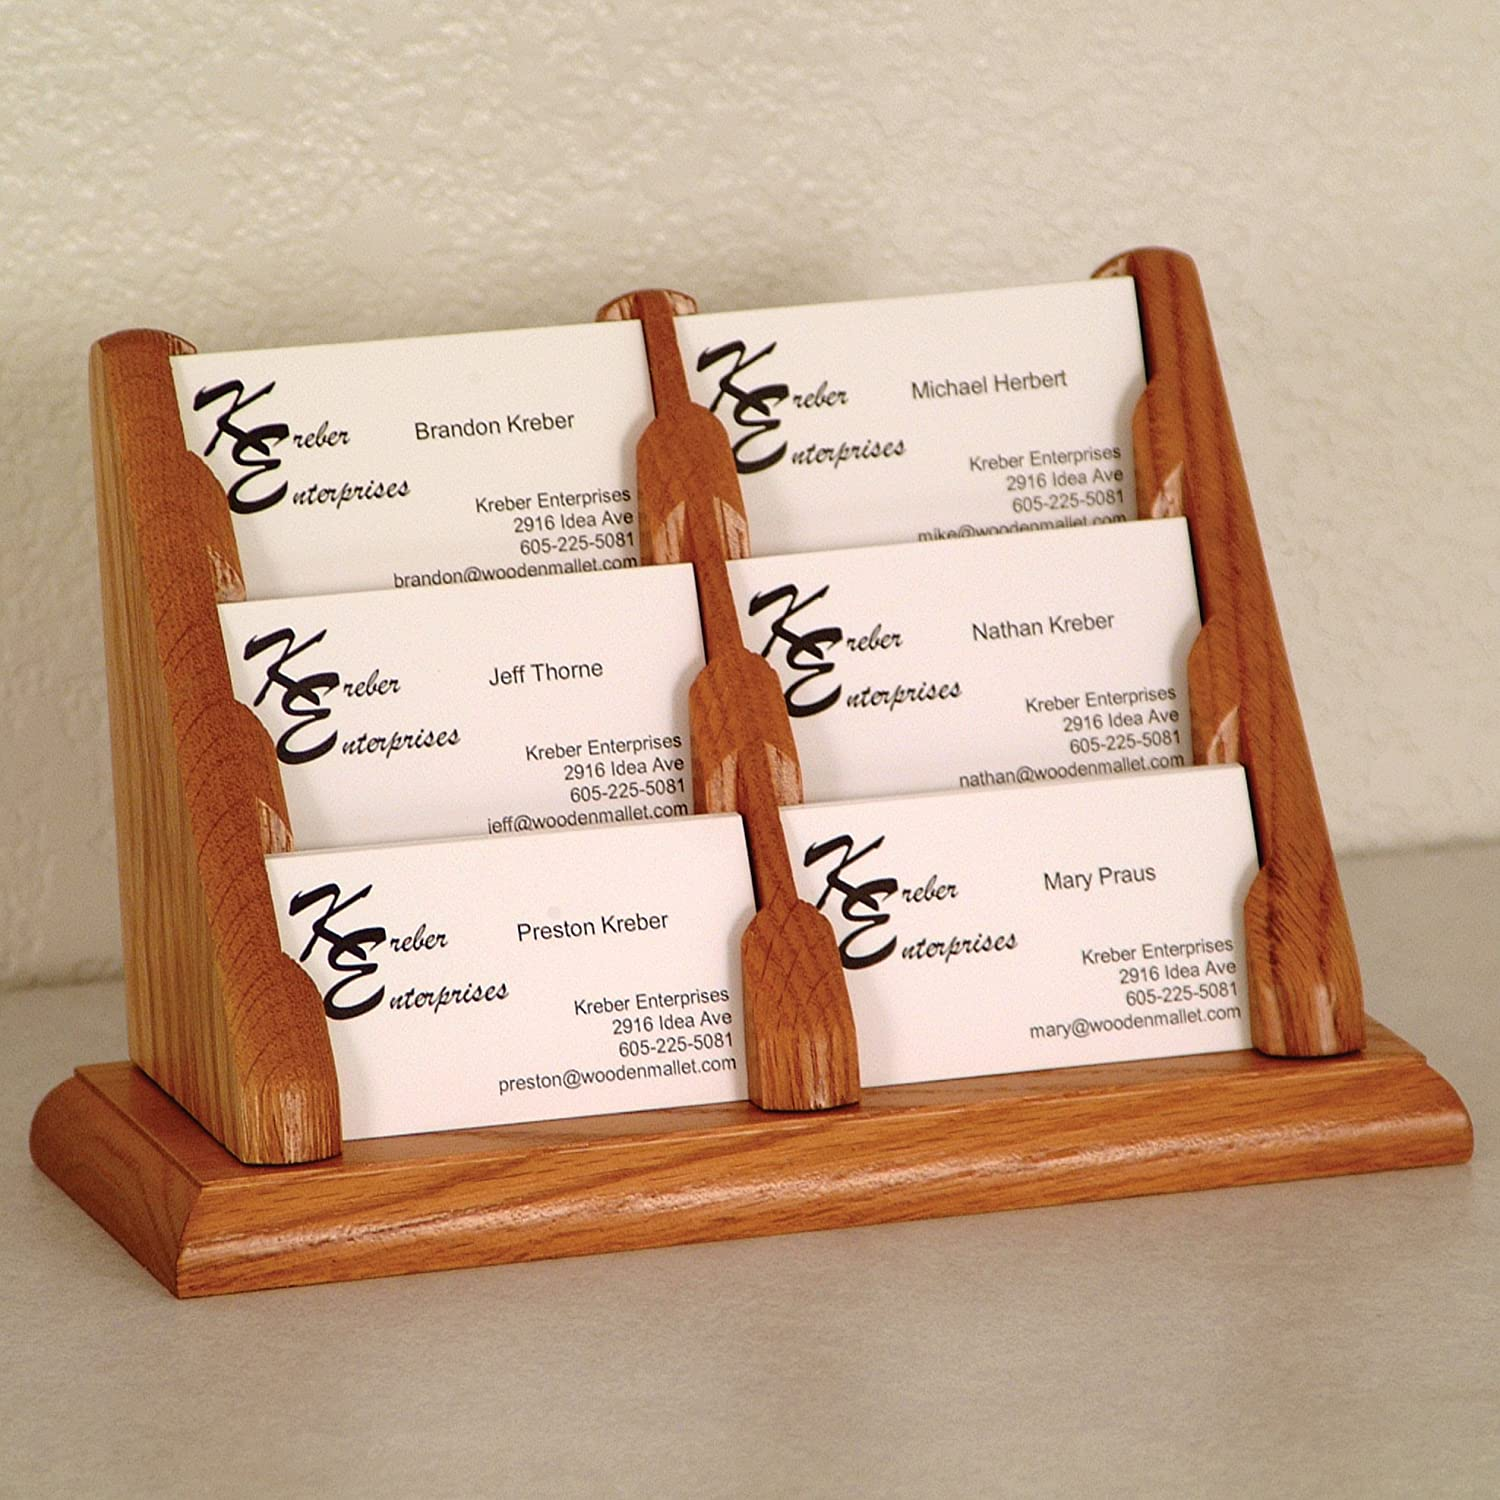 Credence Challenge the lowest price DMD Countertop Business Card Holder with Pocket Display 6